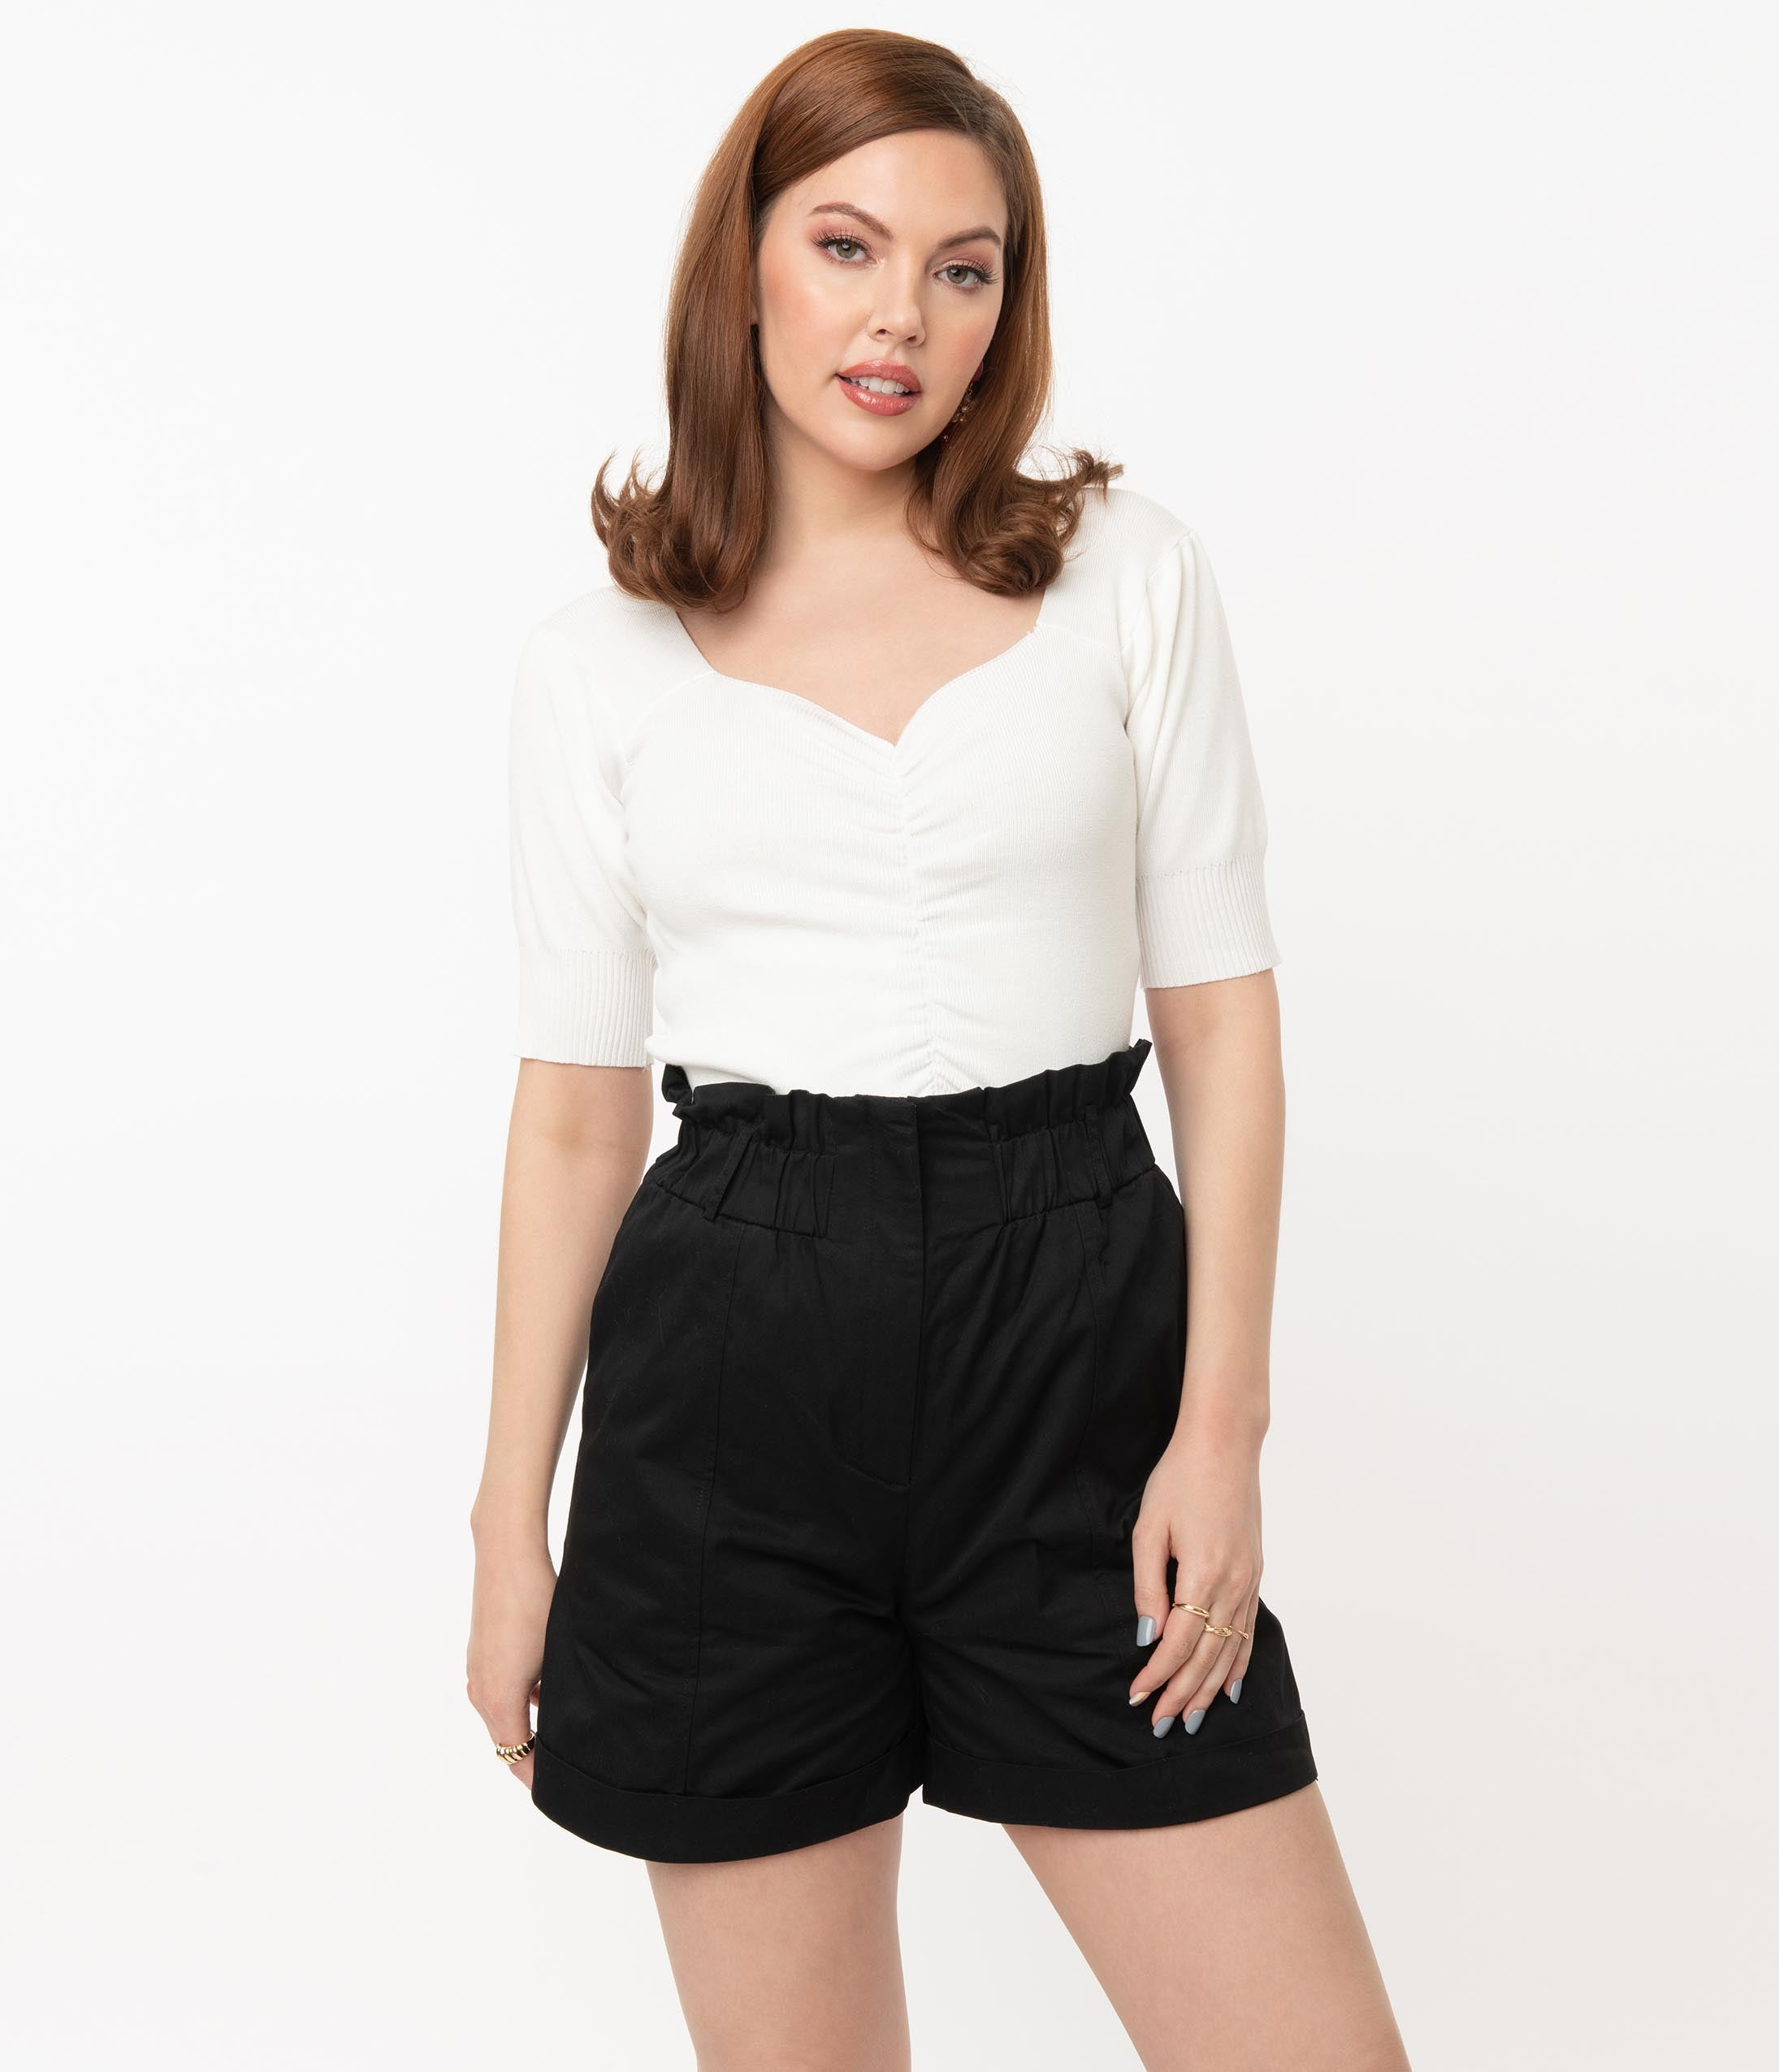 Vintage Shorts, Culottes,  Capris History Retro Style White Gathered Knit Crop Top $58.00 AT vintagedancer.com